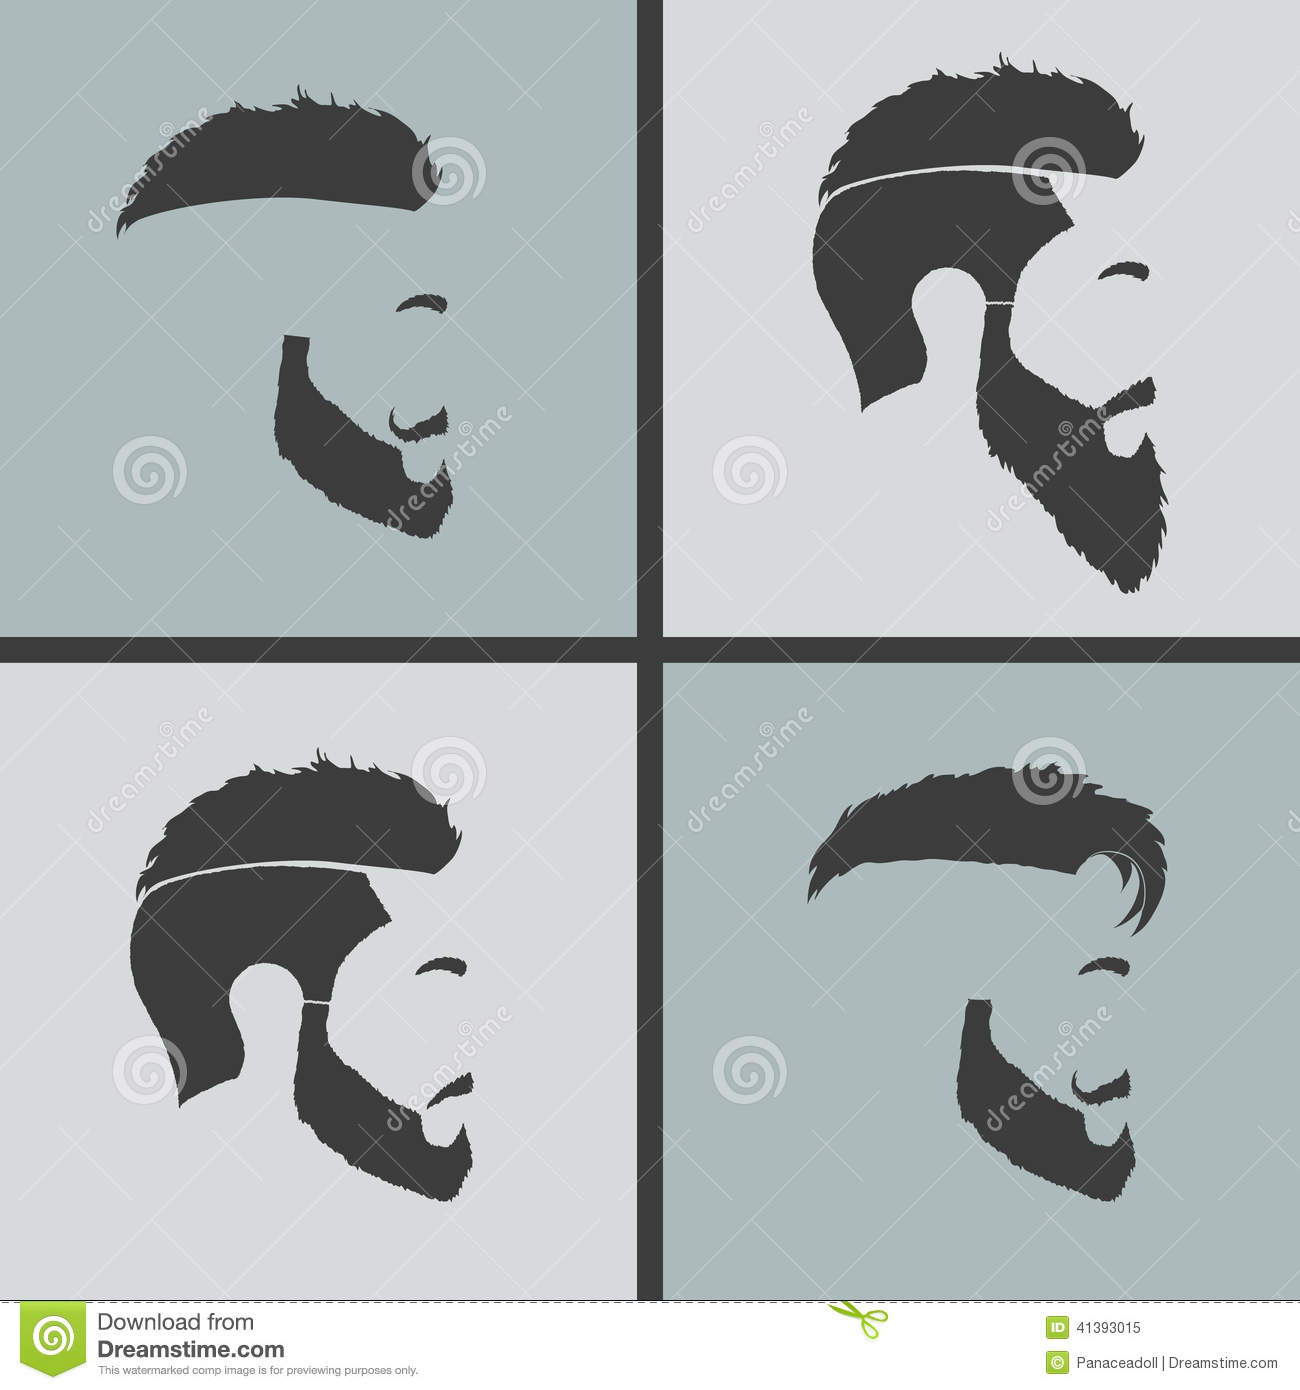 Icons Hairstyles Beard Stock Vector - Image: 41393015